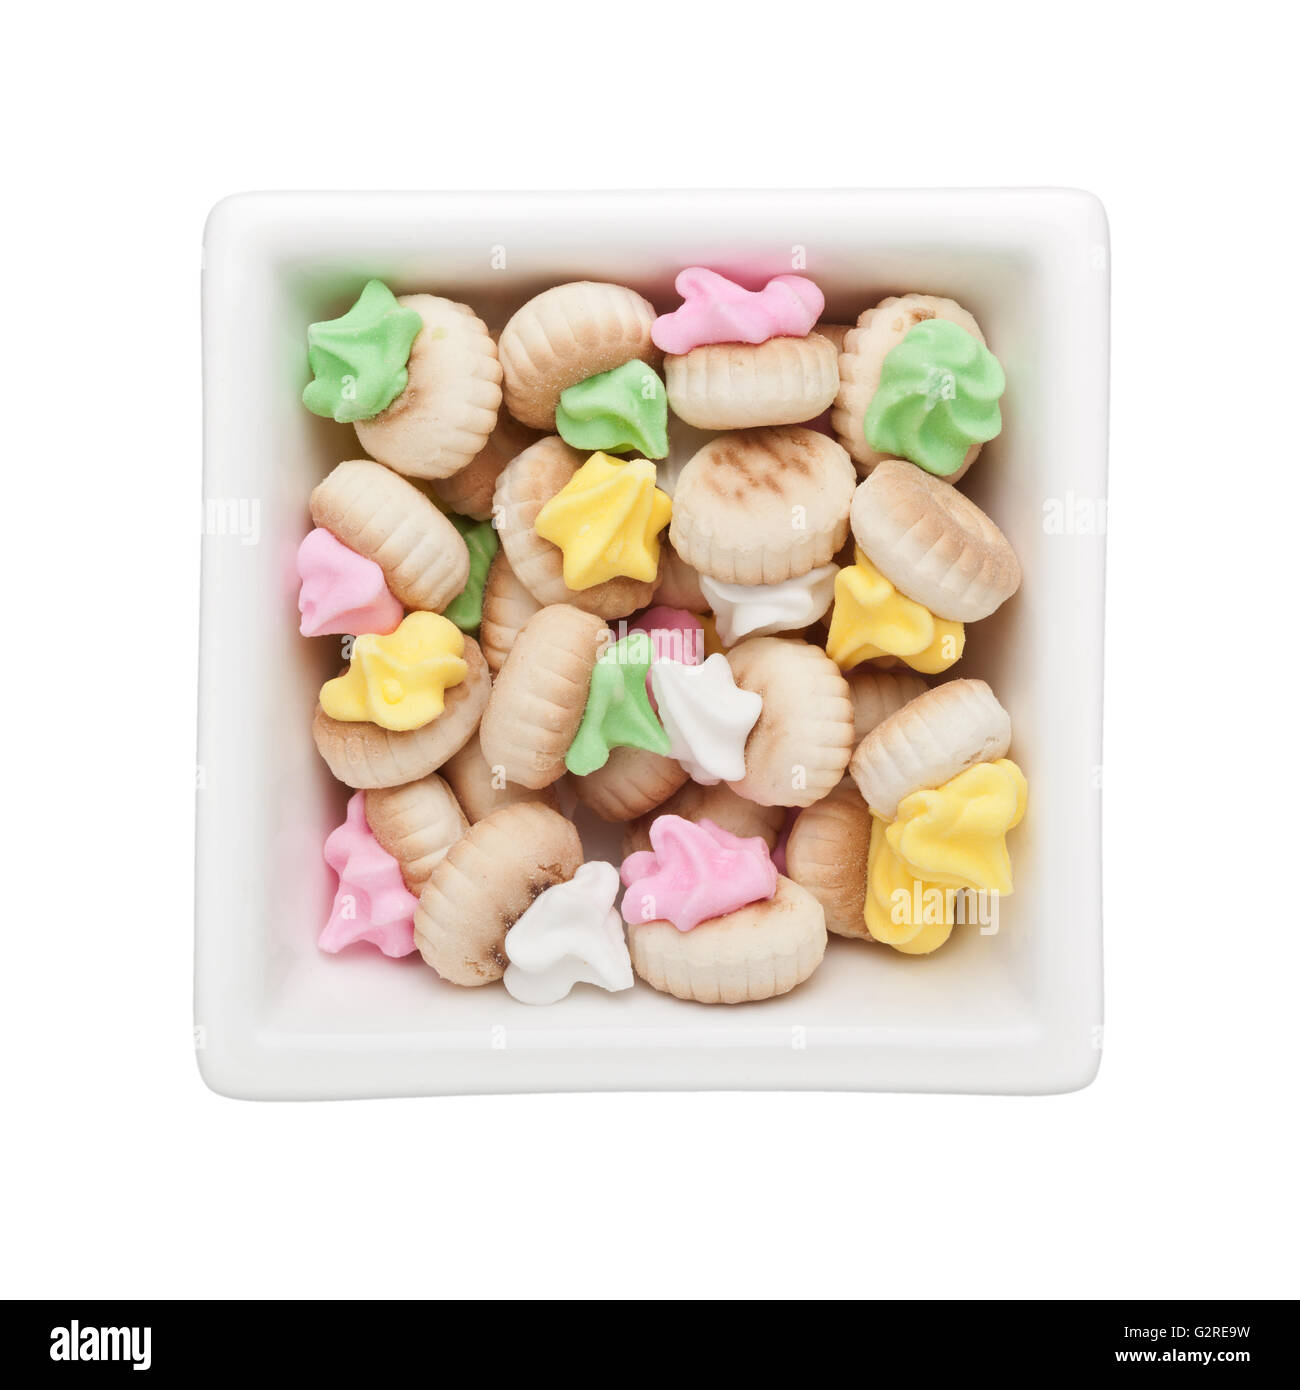 Iced gem biscuits in a square bowl isolated on white background - Stock Image